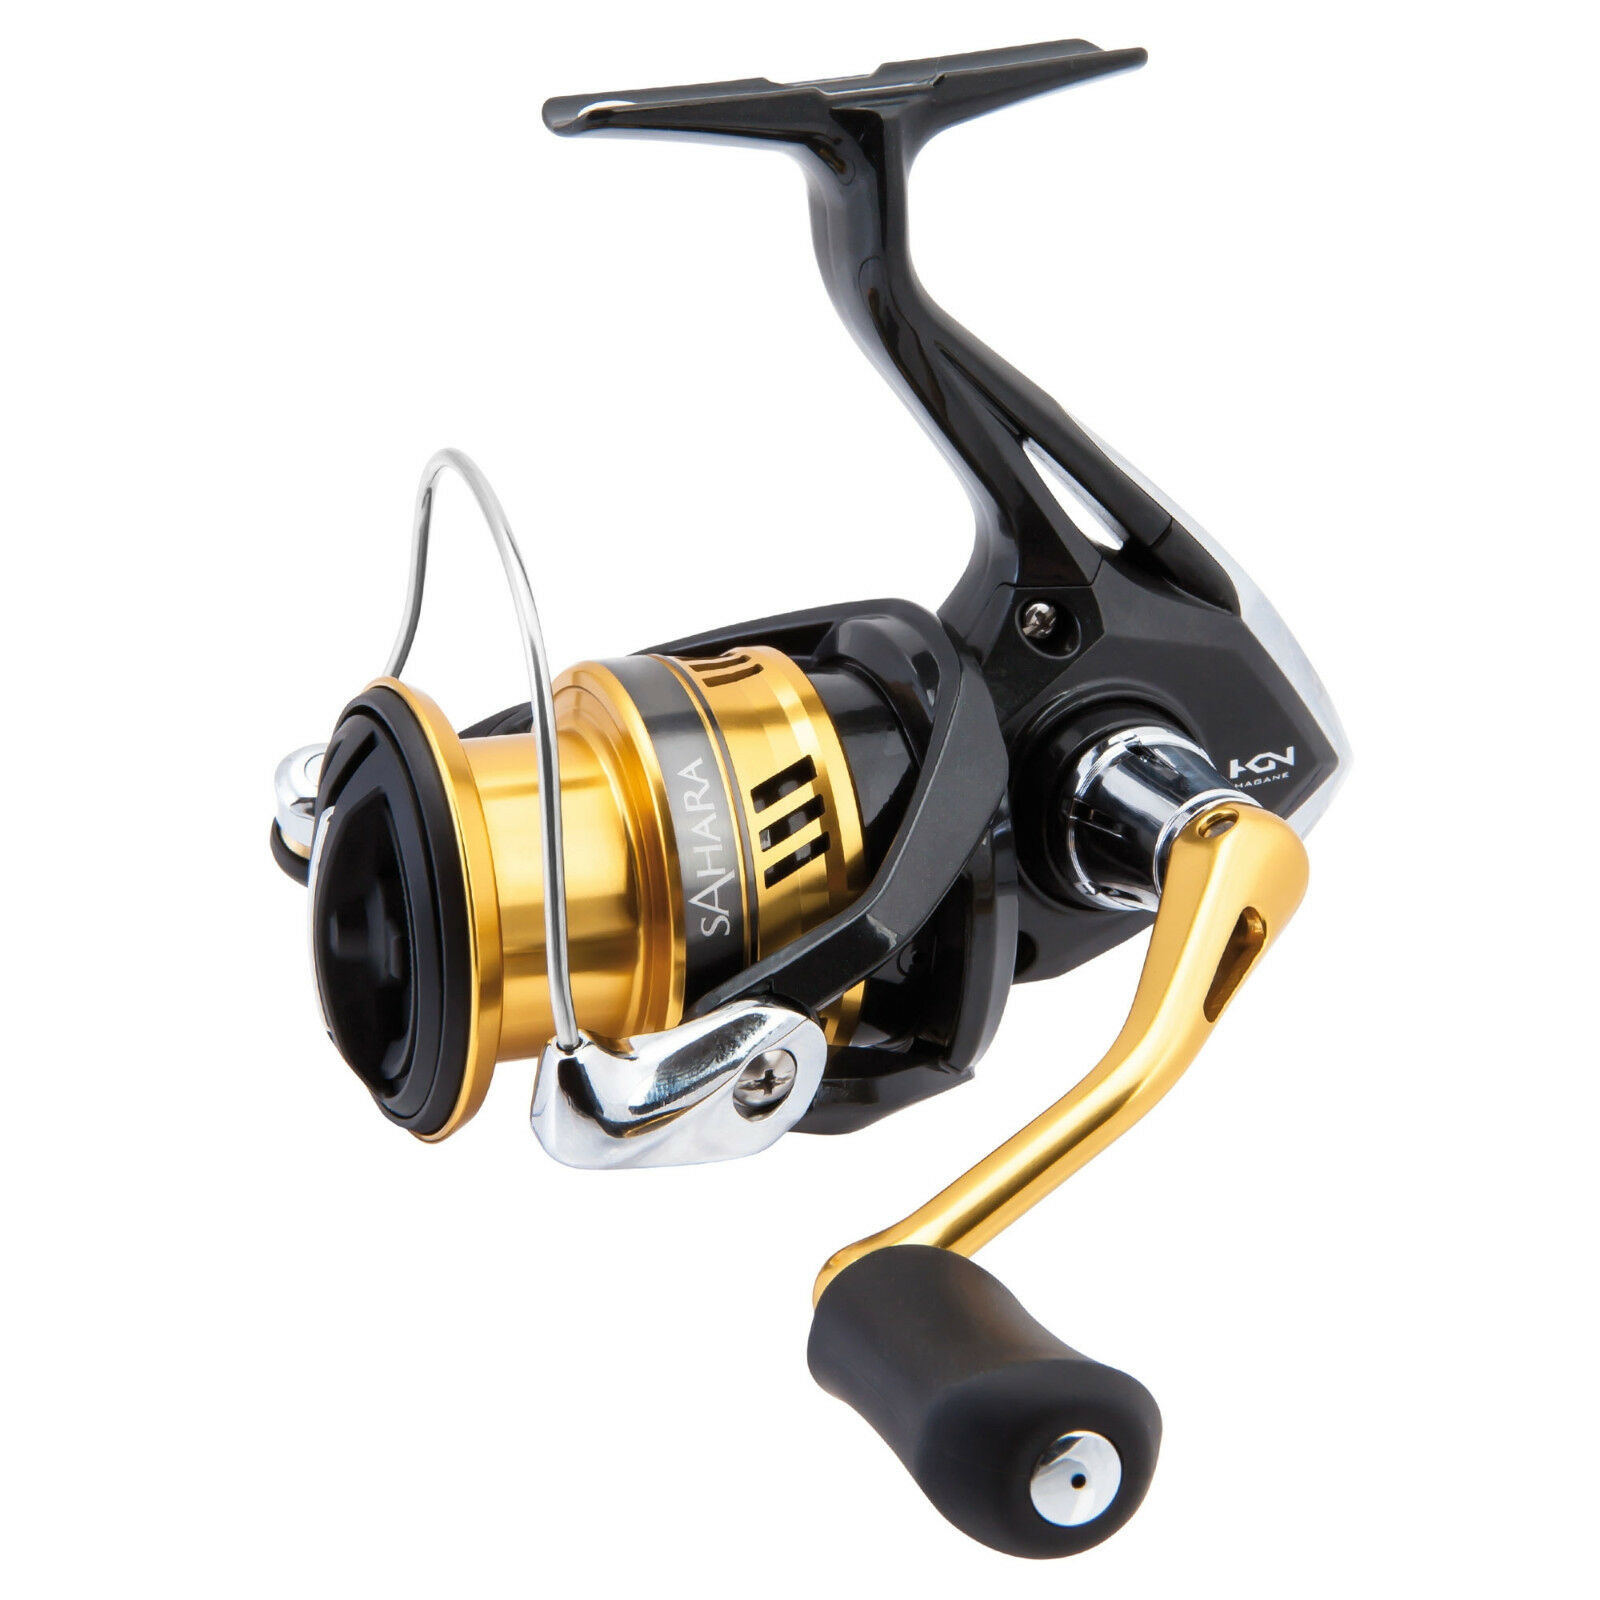 Shimano Sahara FI Spinnrolle Angelrolle Angelrolle Angelrolle Frontbremse Top Preis Leistung 28e610